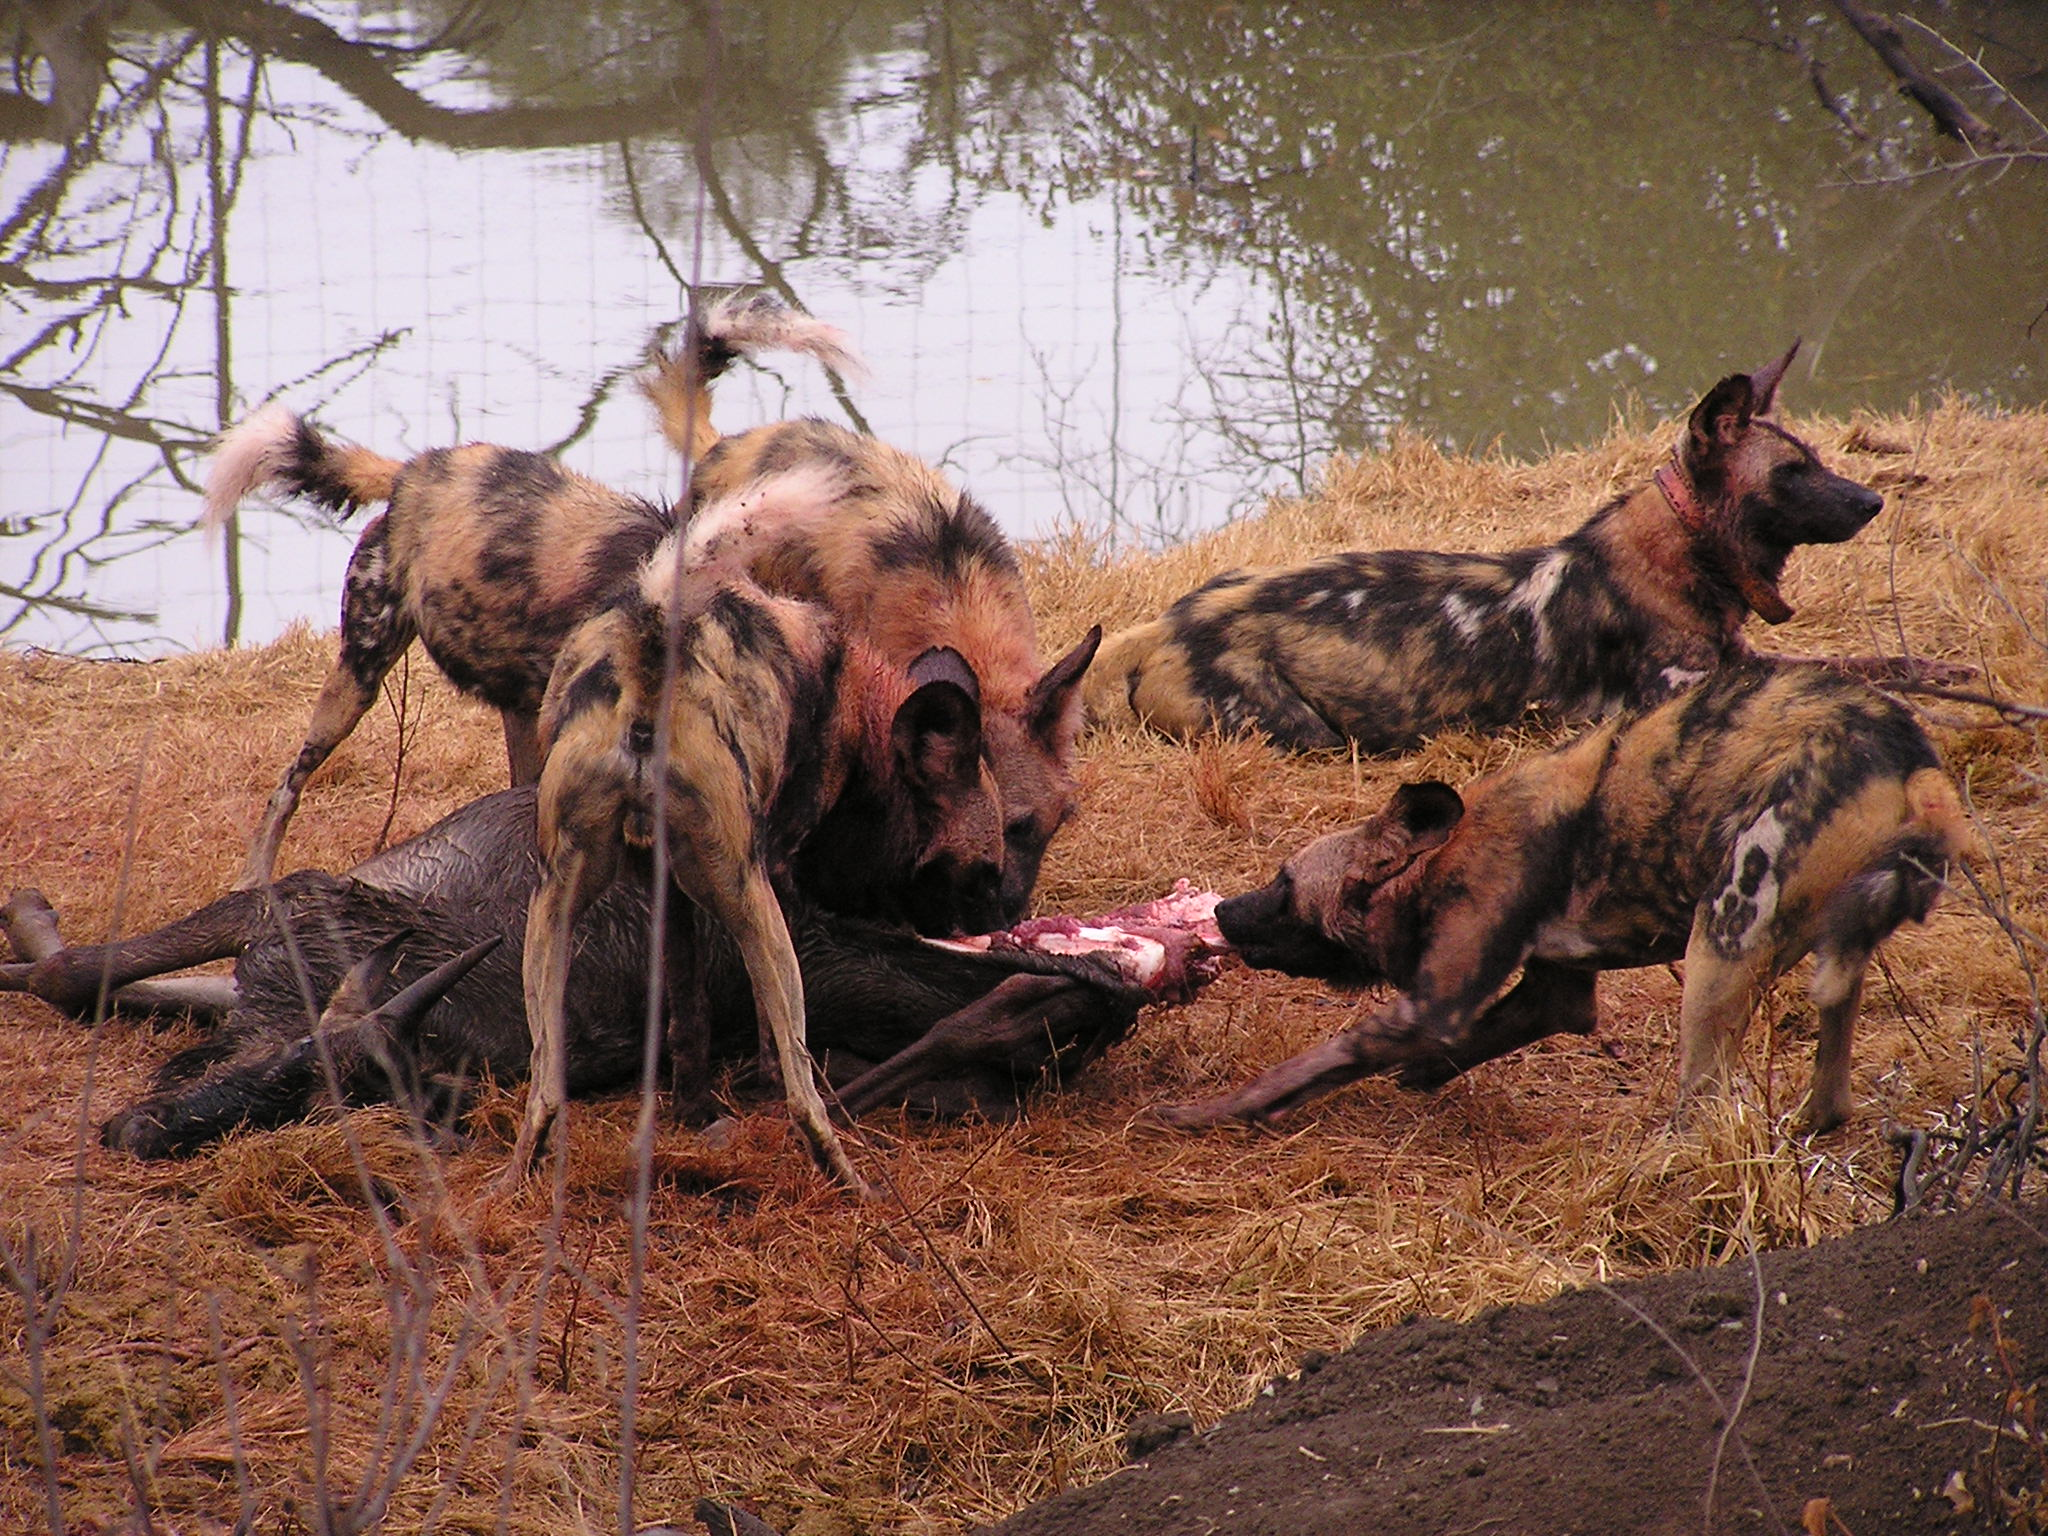 L. p. pictus pack consuming a blue wildebeest, Madikwe Game Reserve, South Africa.